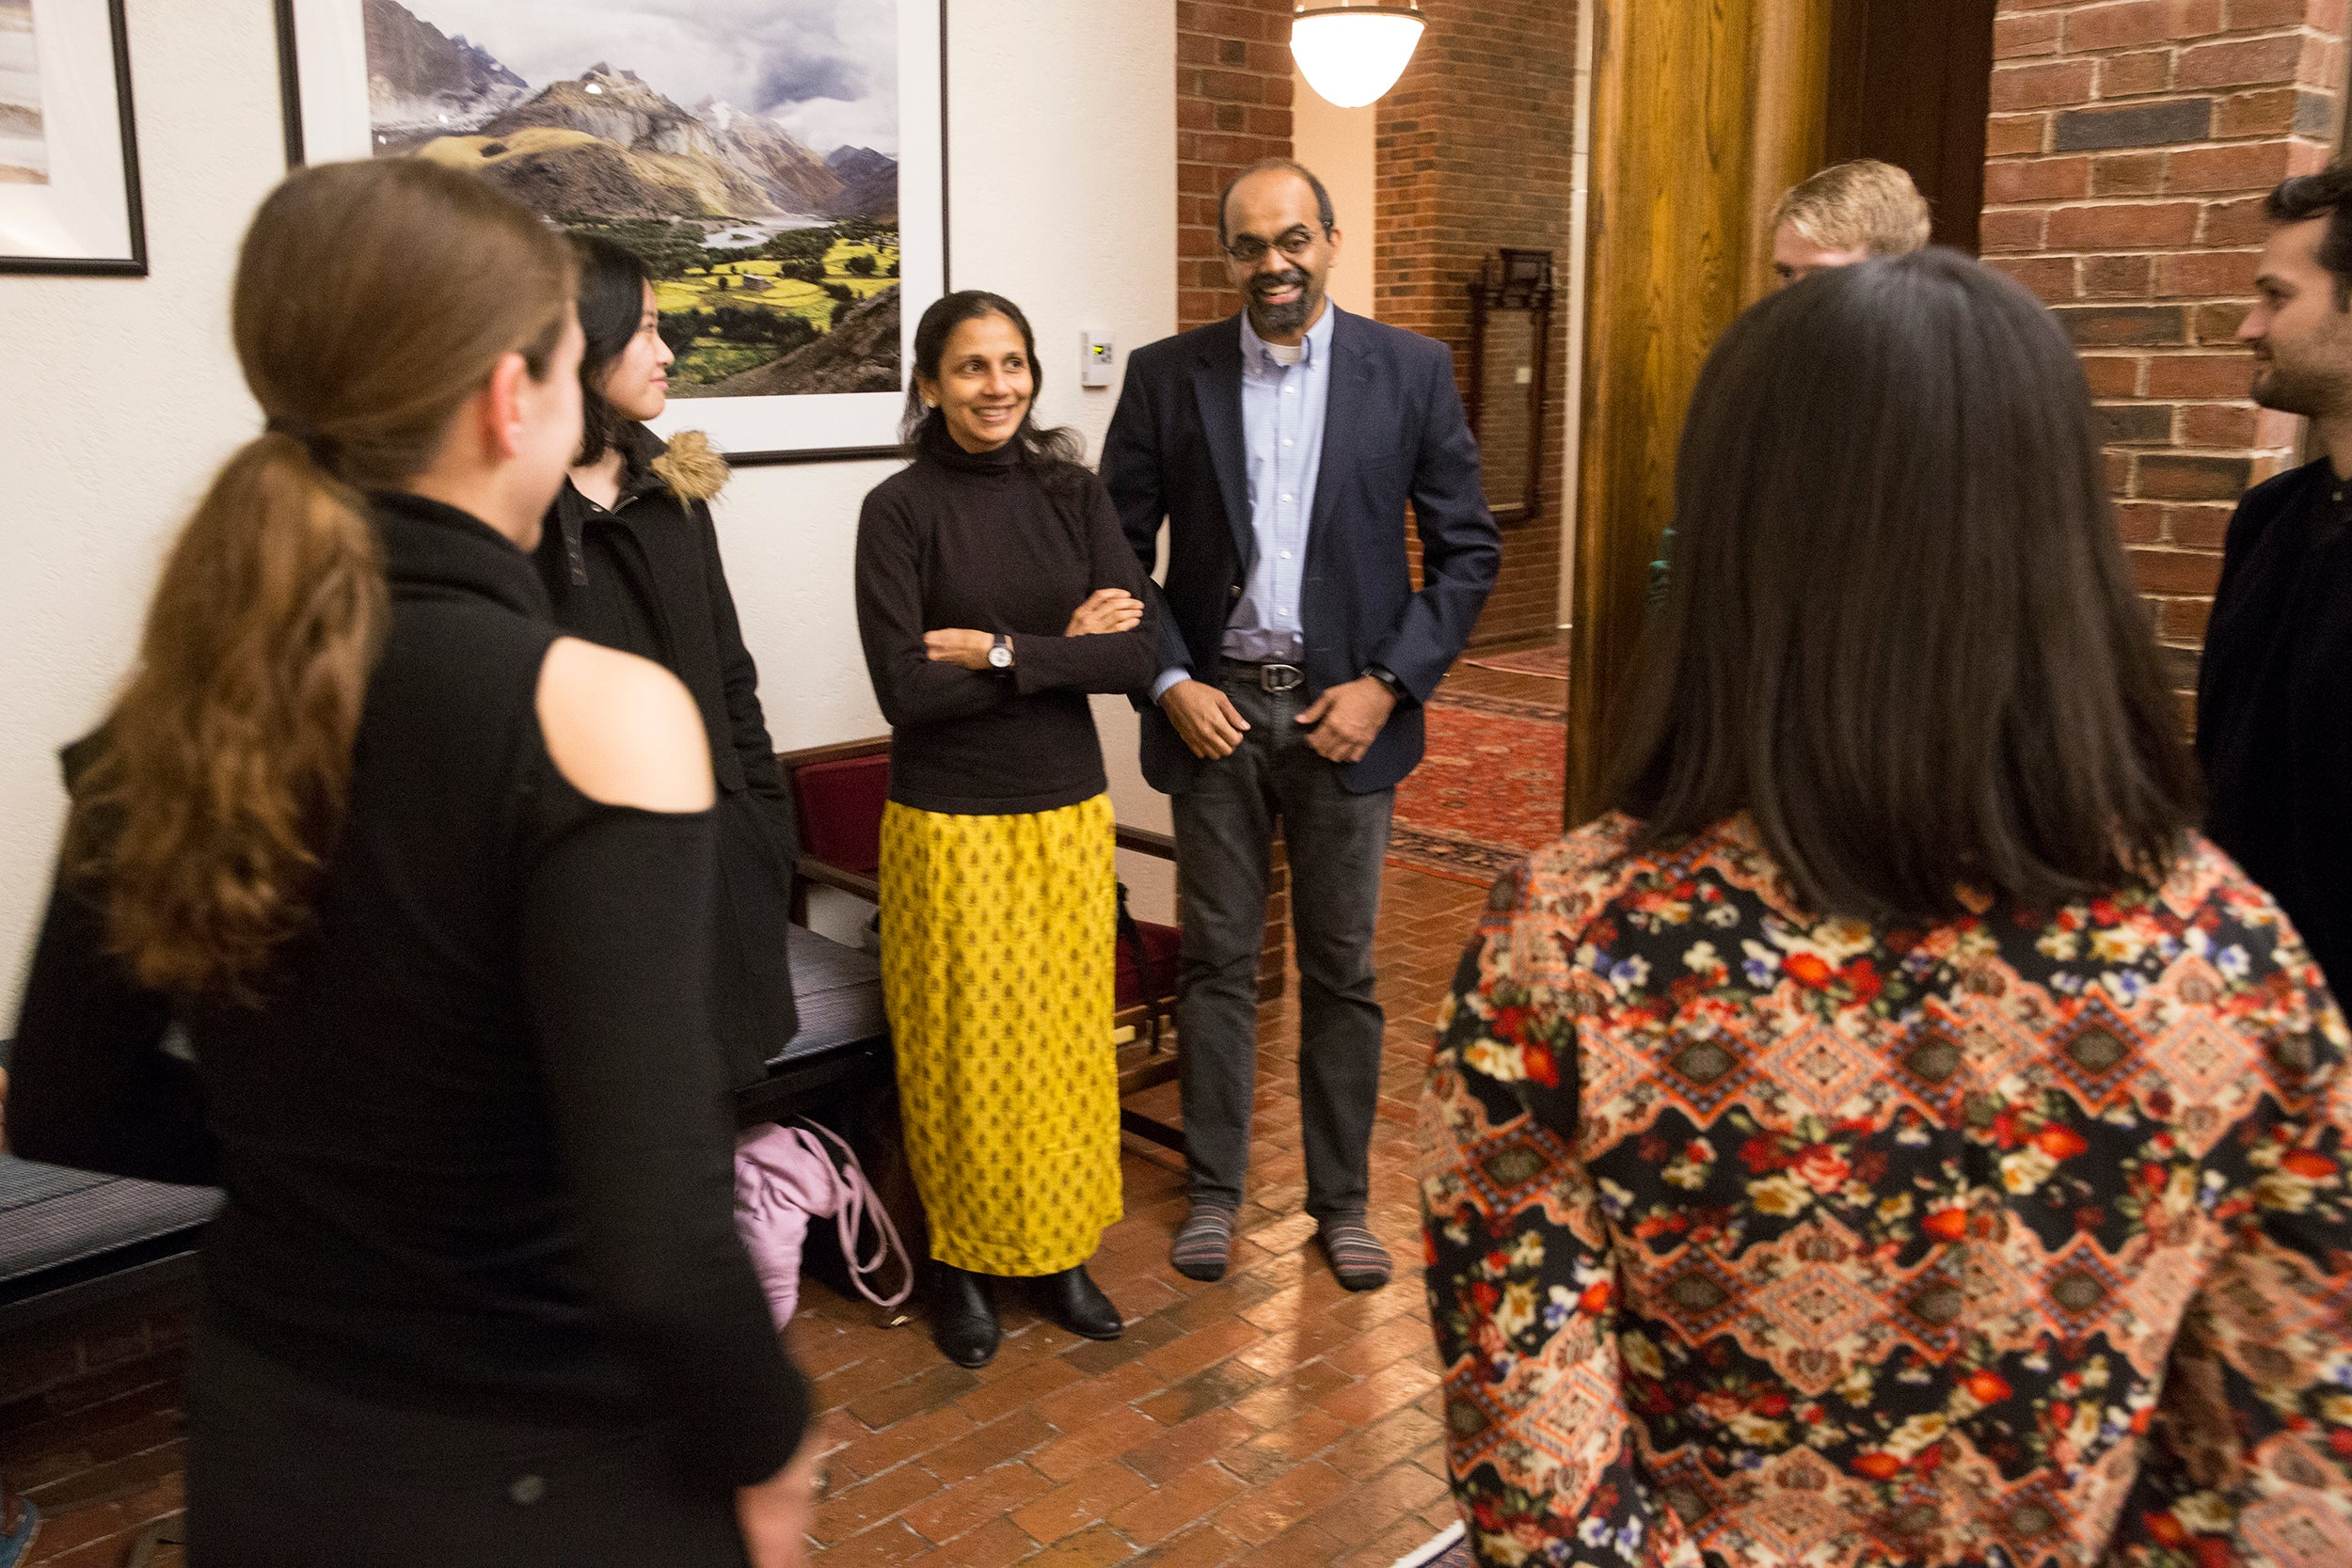 Harvard Faculty Deans L. (Maha) Mahadevan and Amala Mahadevan speak with members of the American Modern Opera Company.